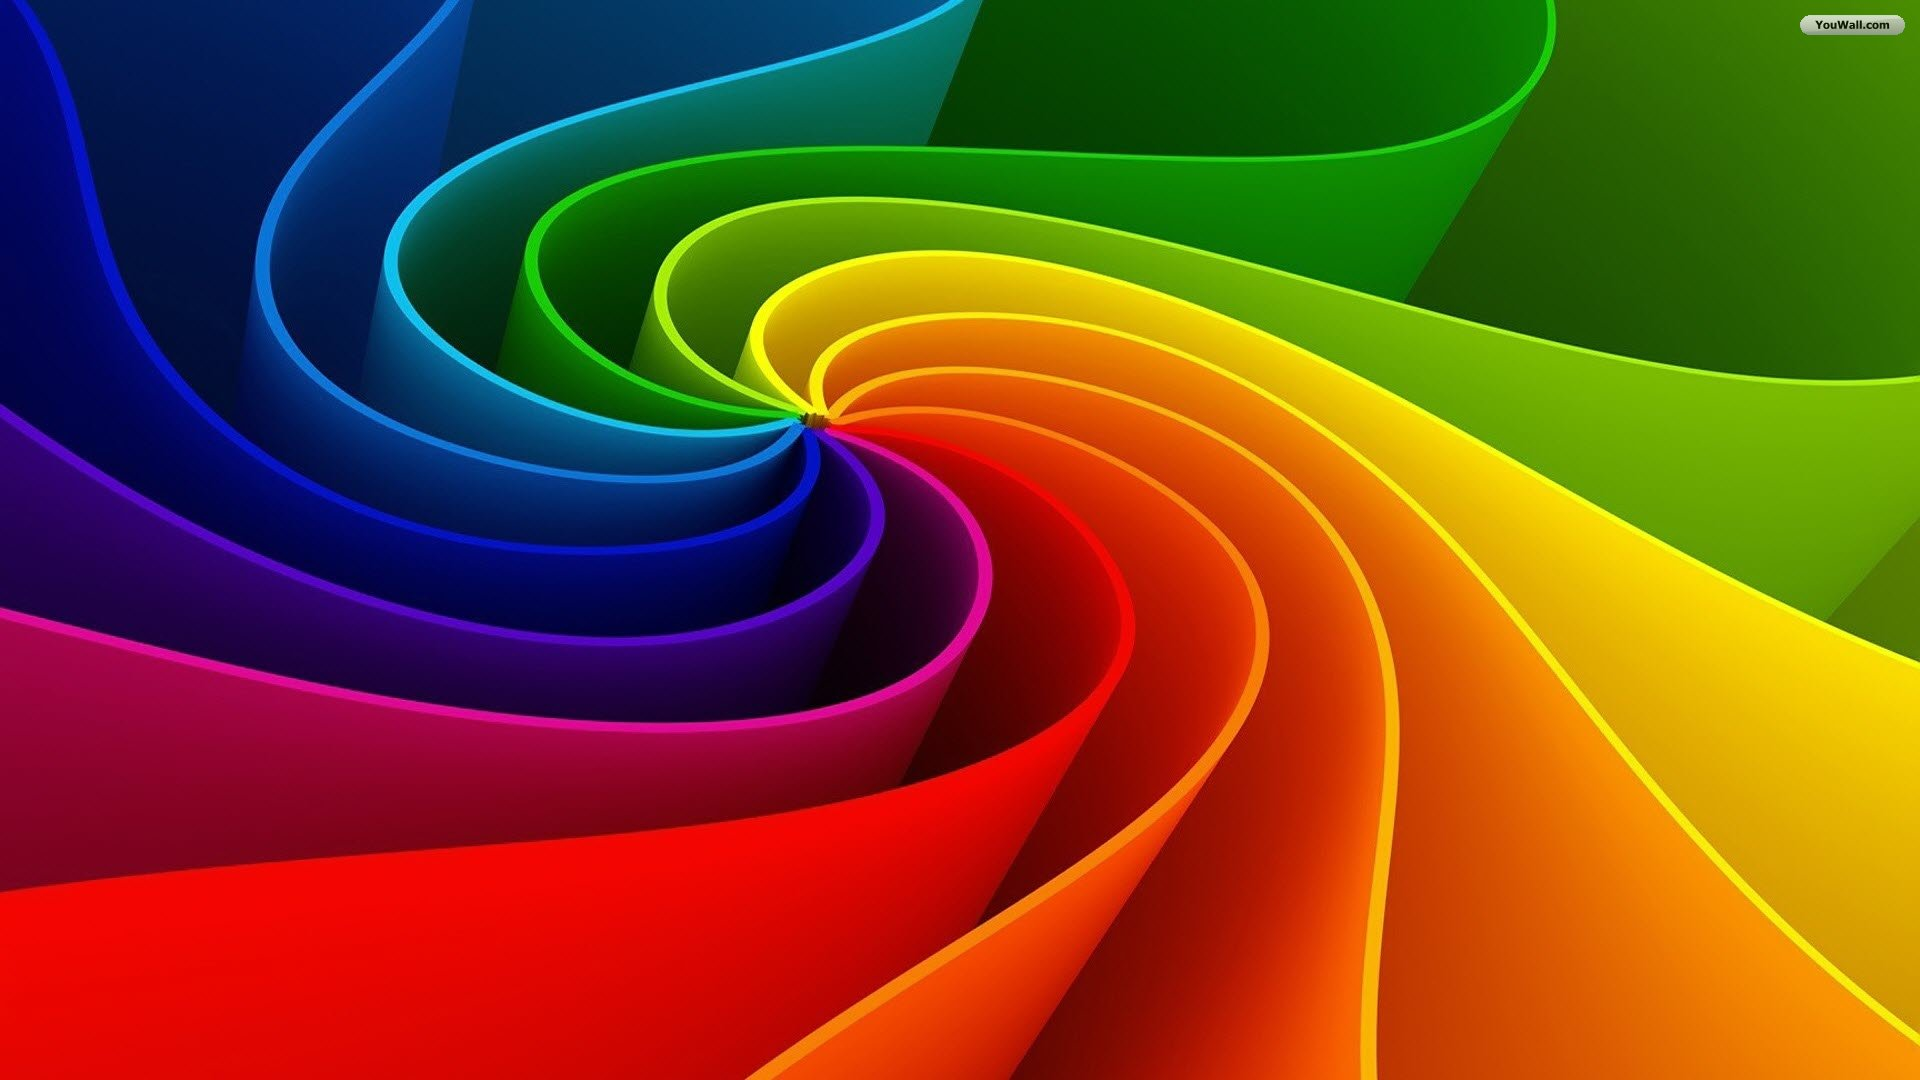 rainbow illustration wallpaper 1920x1080 - photo #14